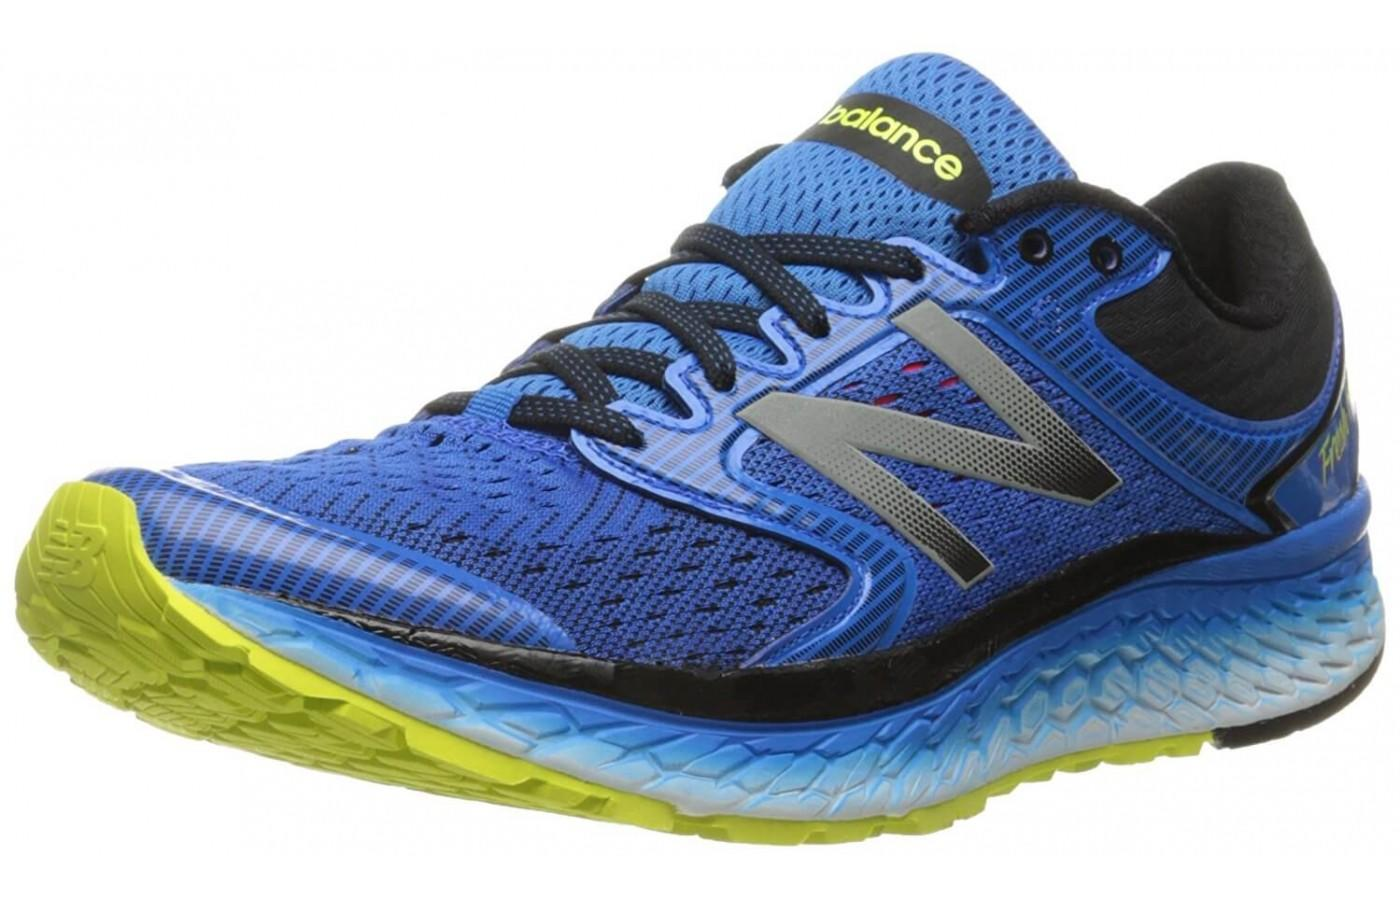 New Balance V Running Shoes Review